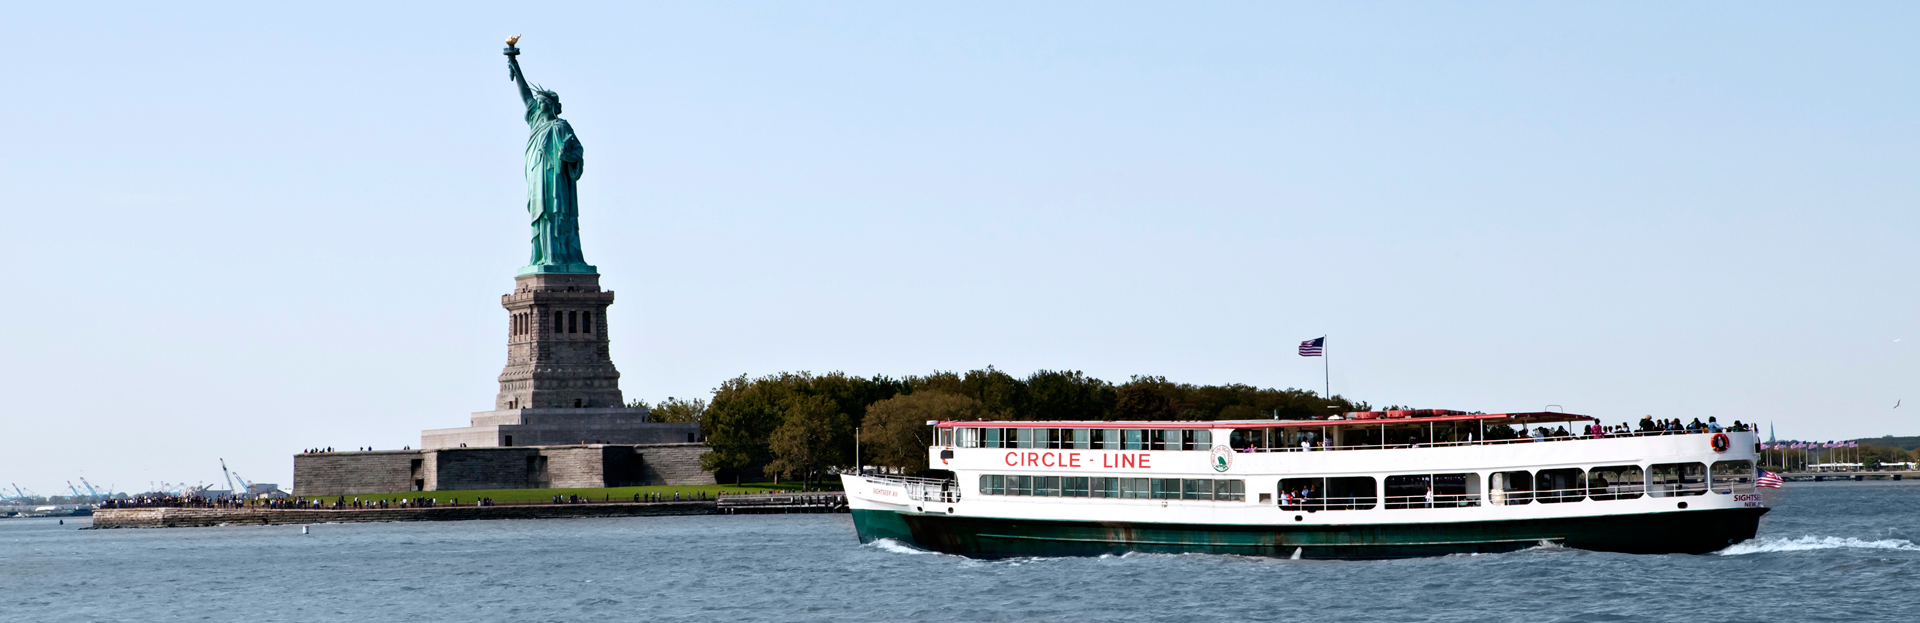 Circle Line Cruise in New York